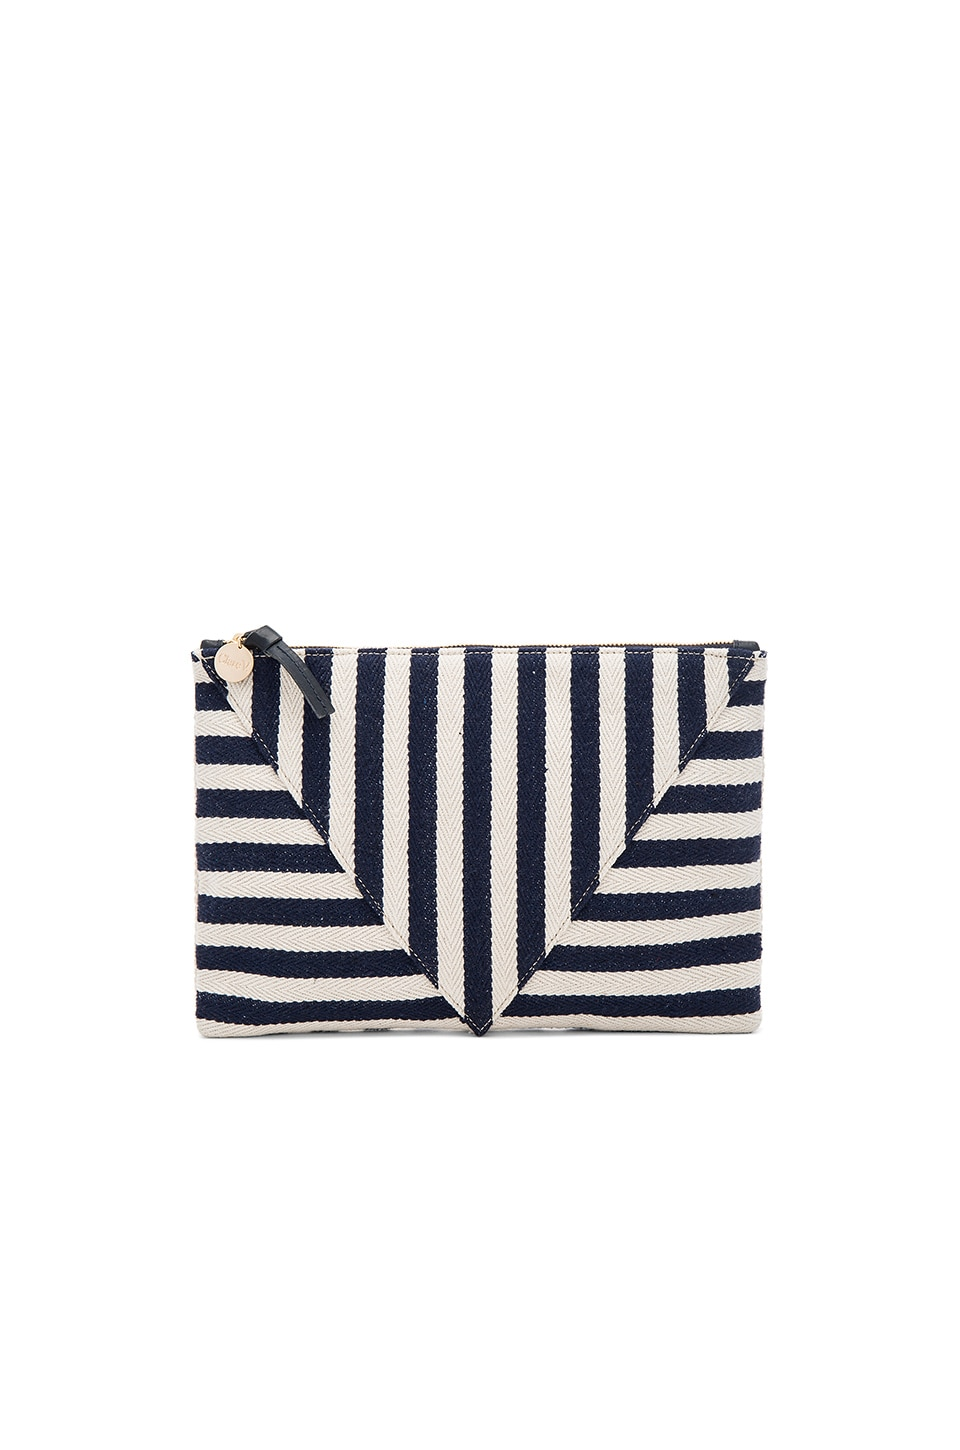 Clare V. Patchwork Flat Clutch in Navy Mariner Stripe